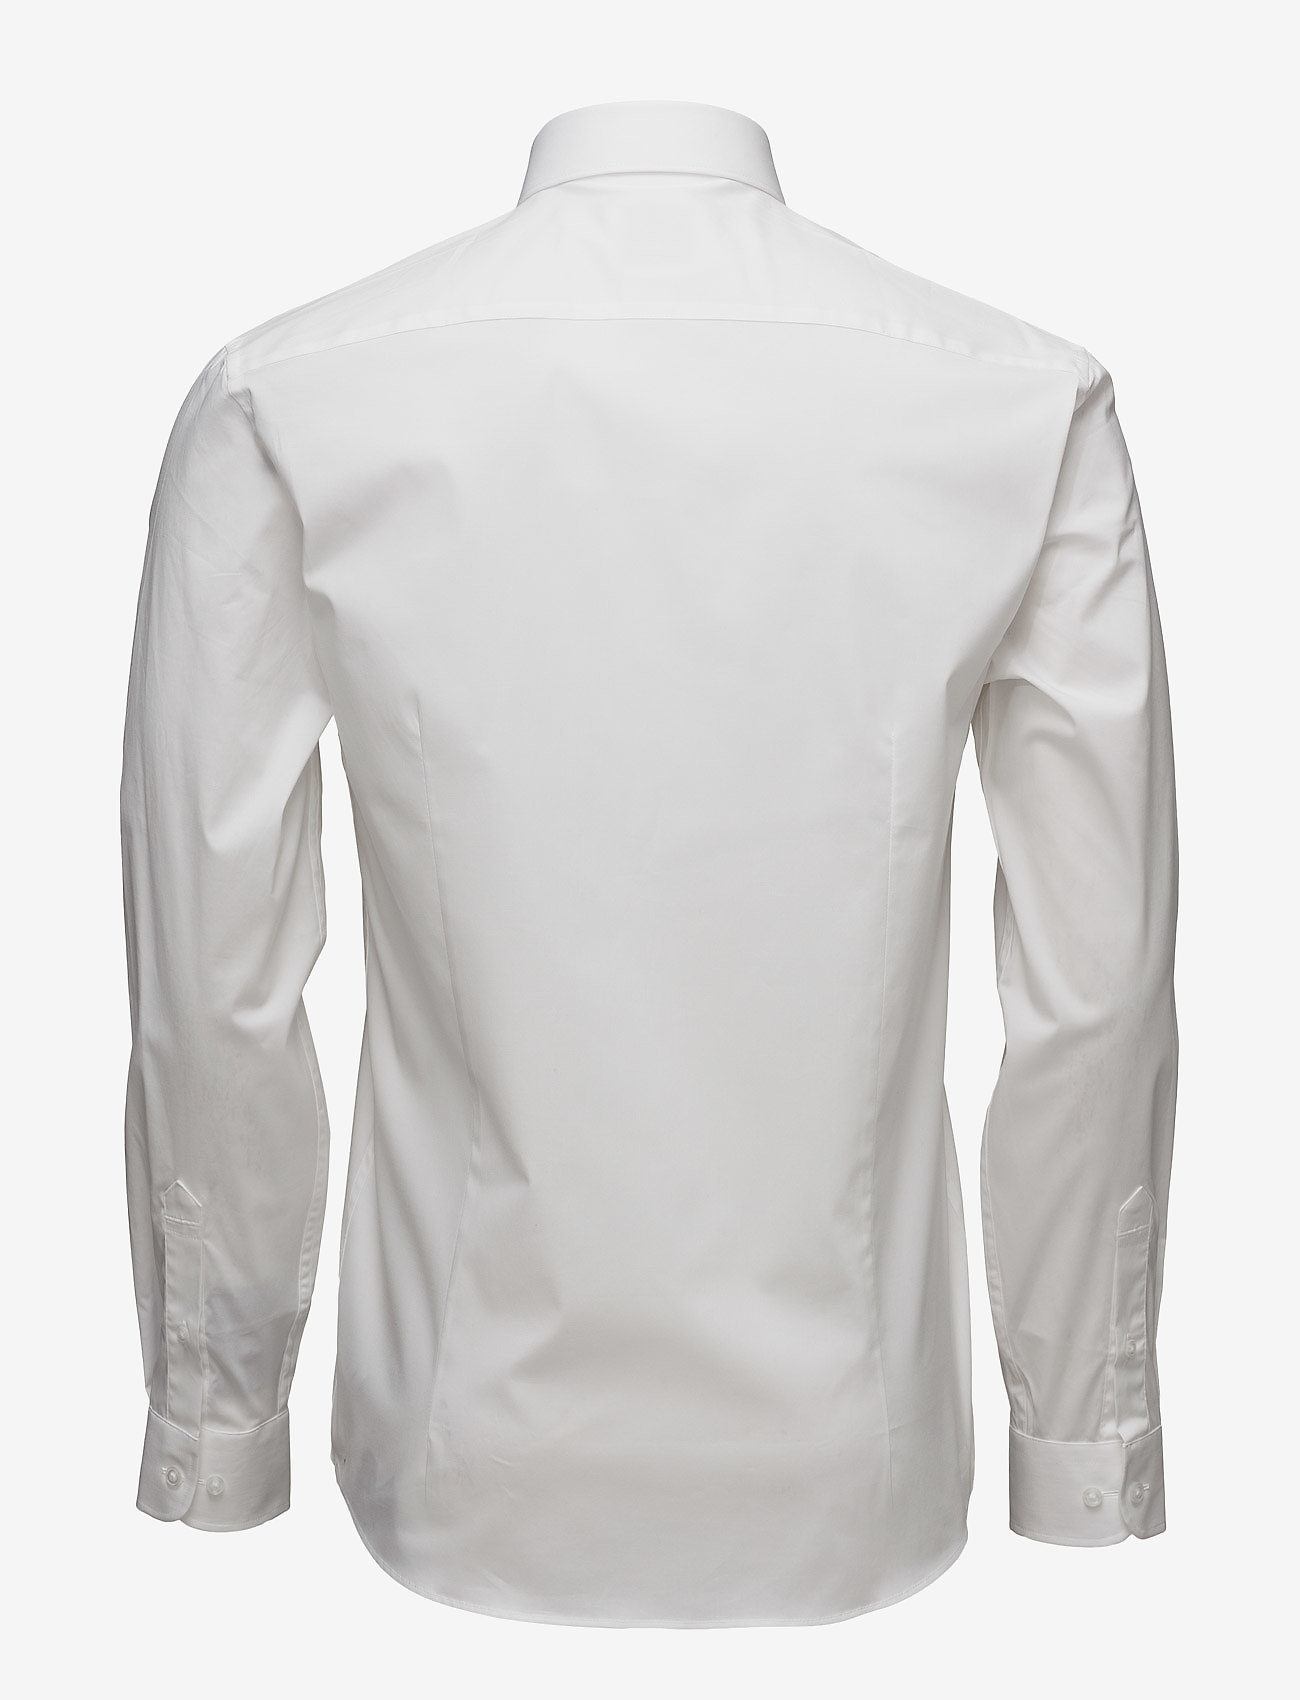 Lindbergh Men's Stretch Shirt L/S - Skjorter WHITE - Menn Klær